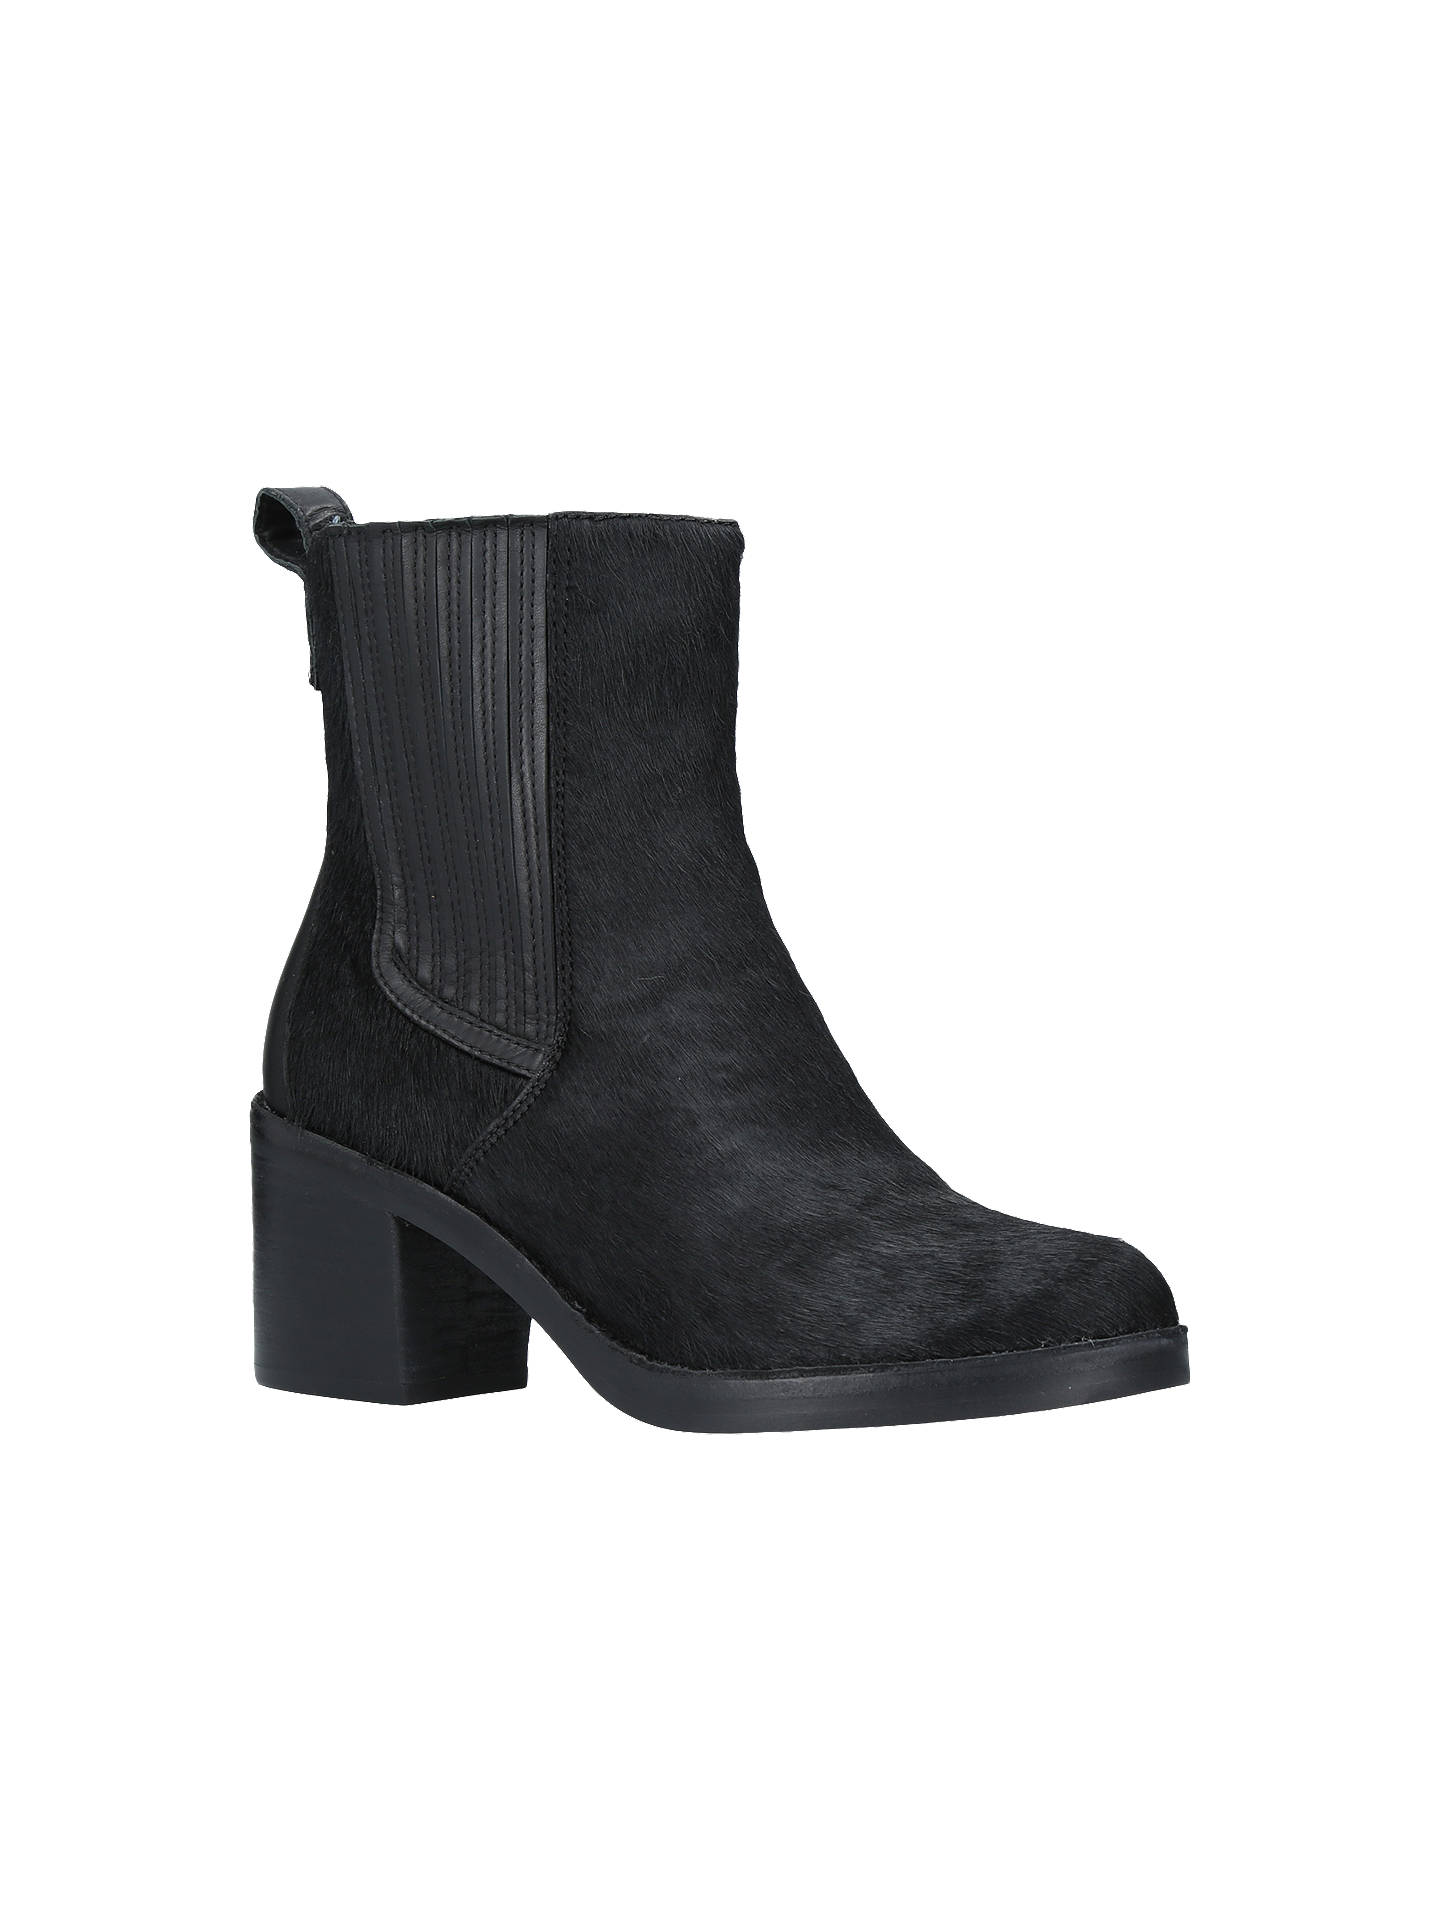 b870cf188f4 UGG Camden Block Heeled Ankle Chelsea Boots, Black Suede at John ...